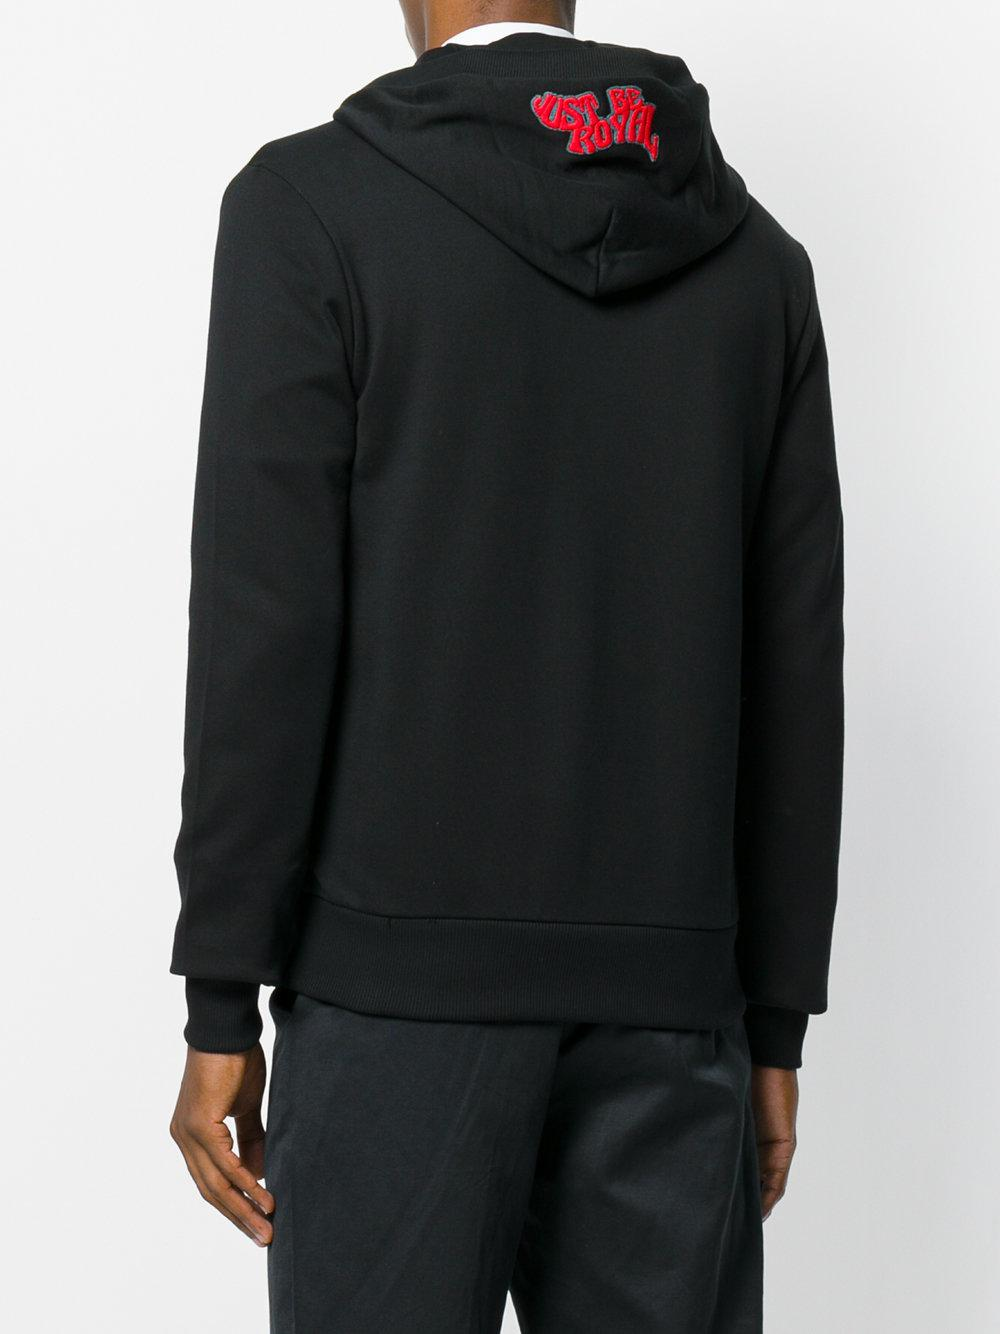 Dolce & Gabbana Cotton Royal Prince Patch Zip Hoodie in Black for Men